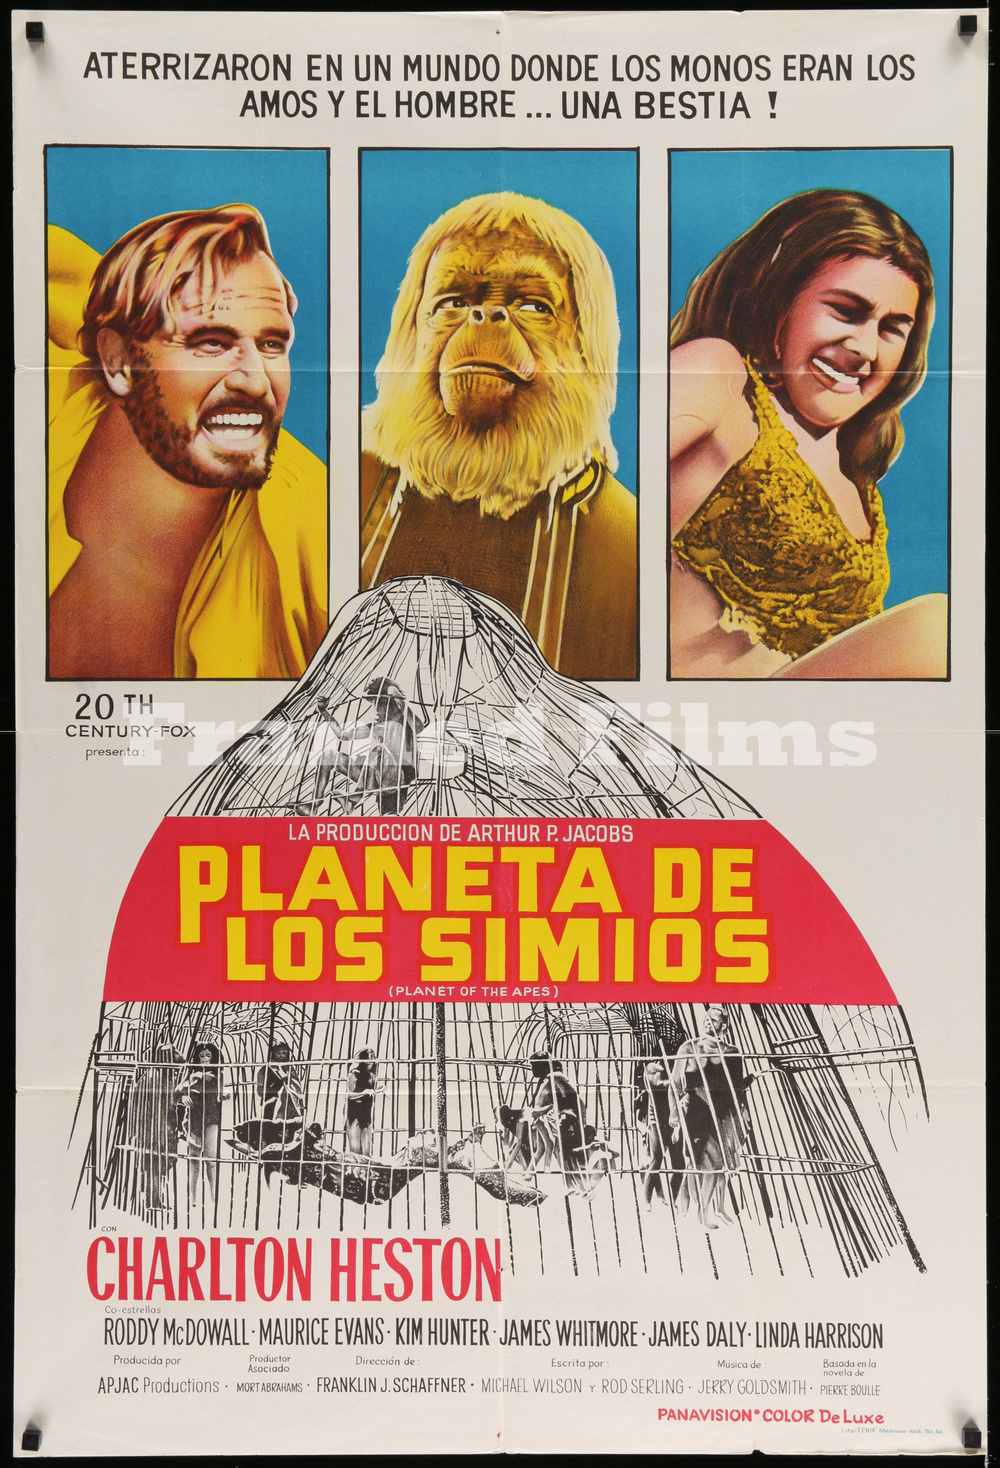 argentinean_planet_of_the_apes_BM05299_T.jpg